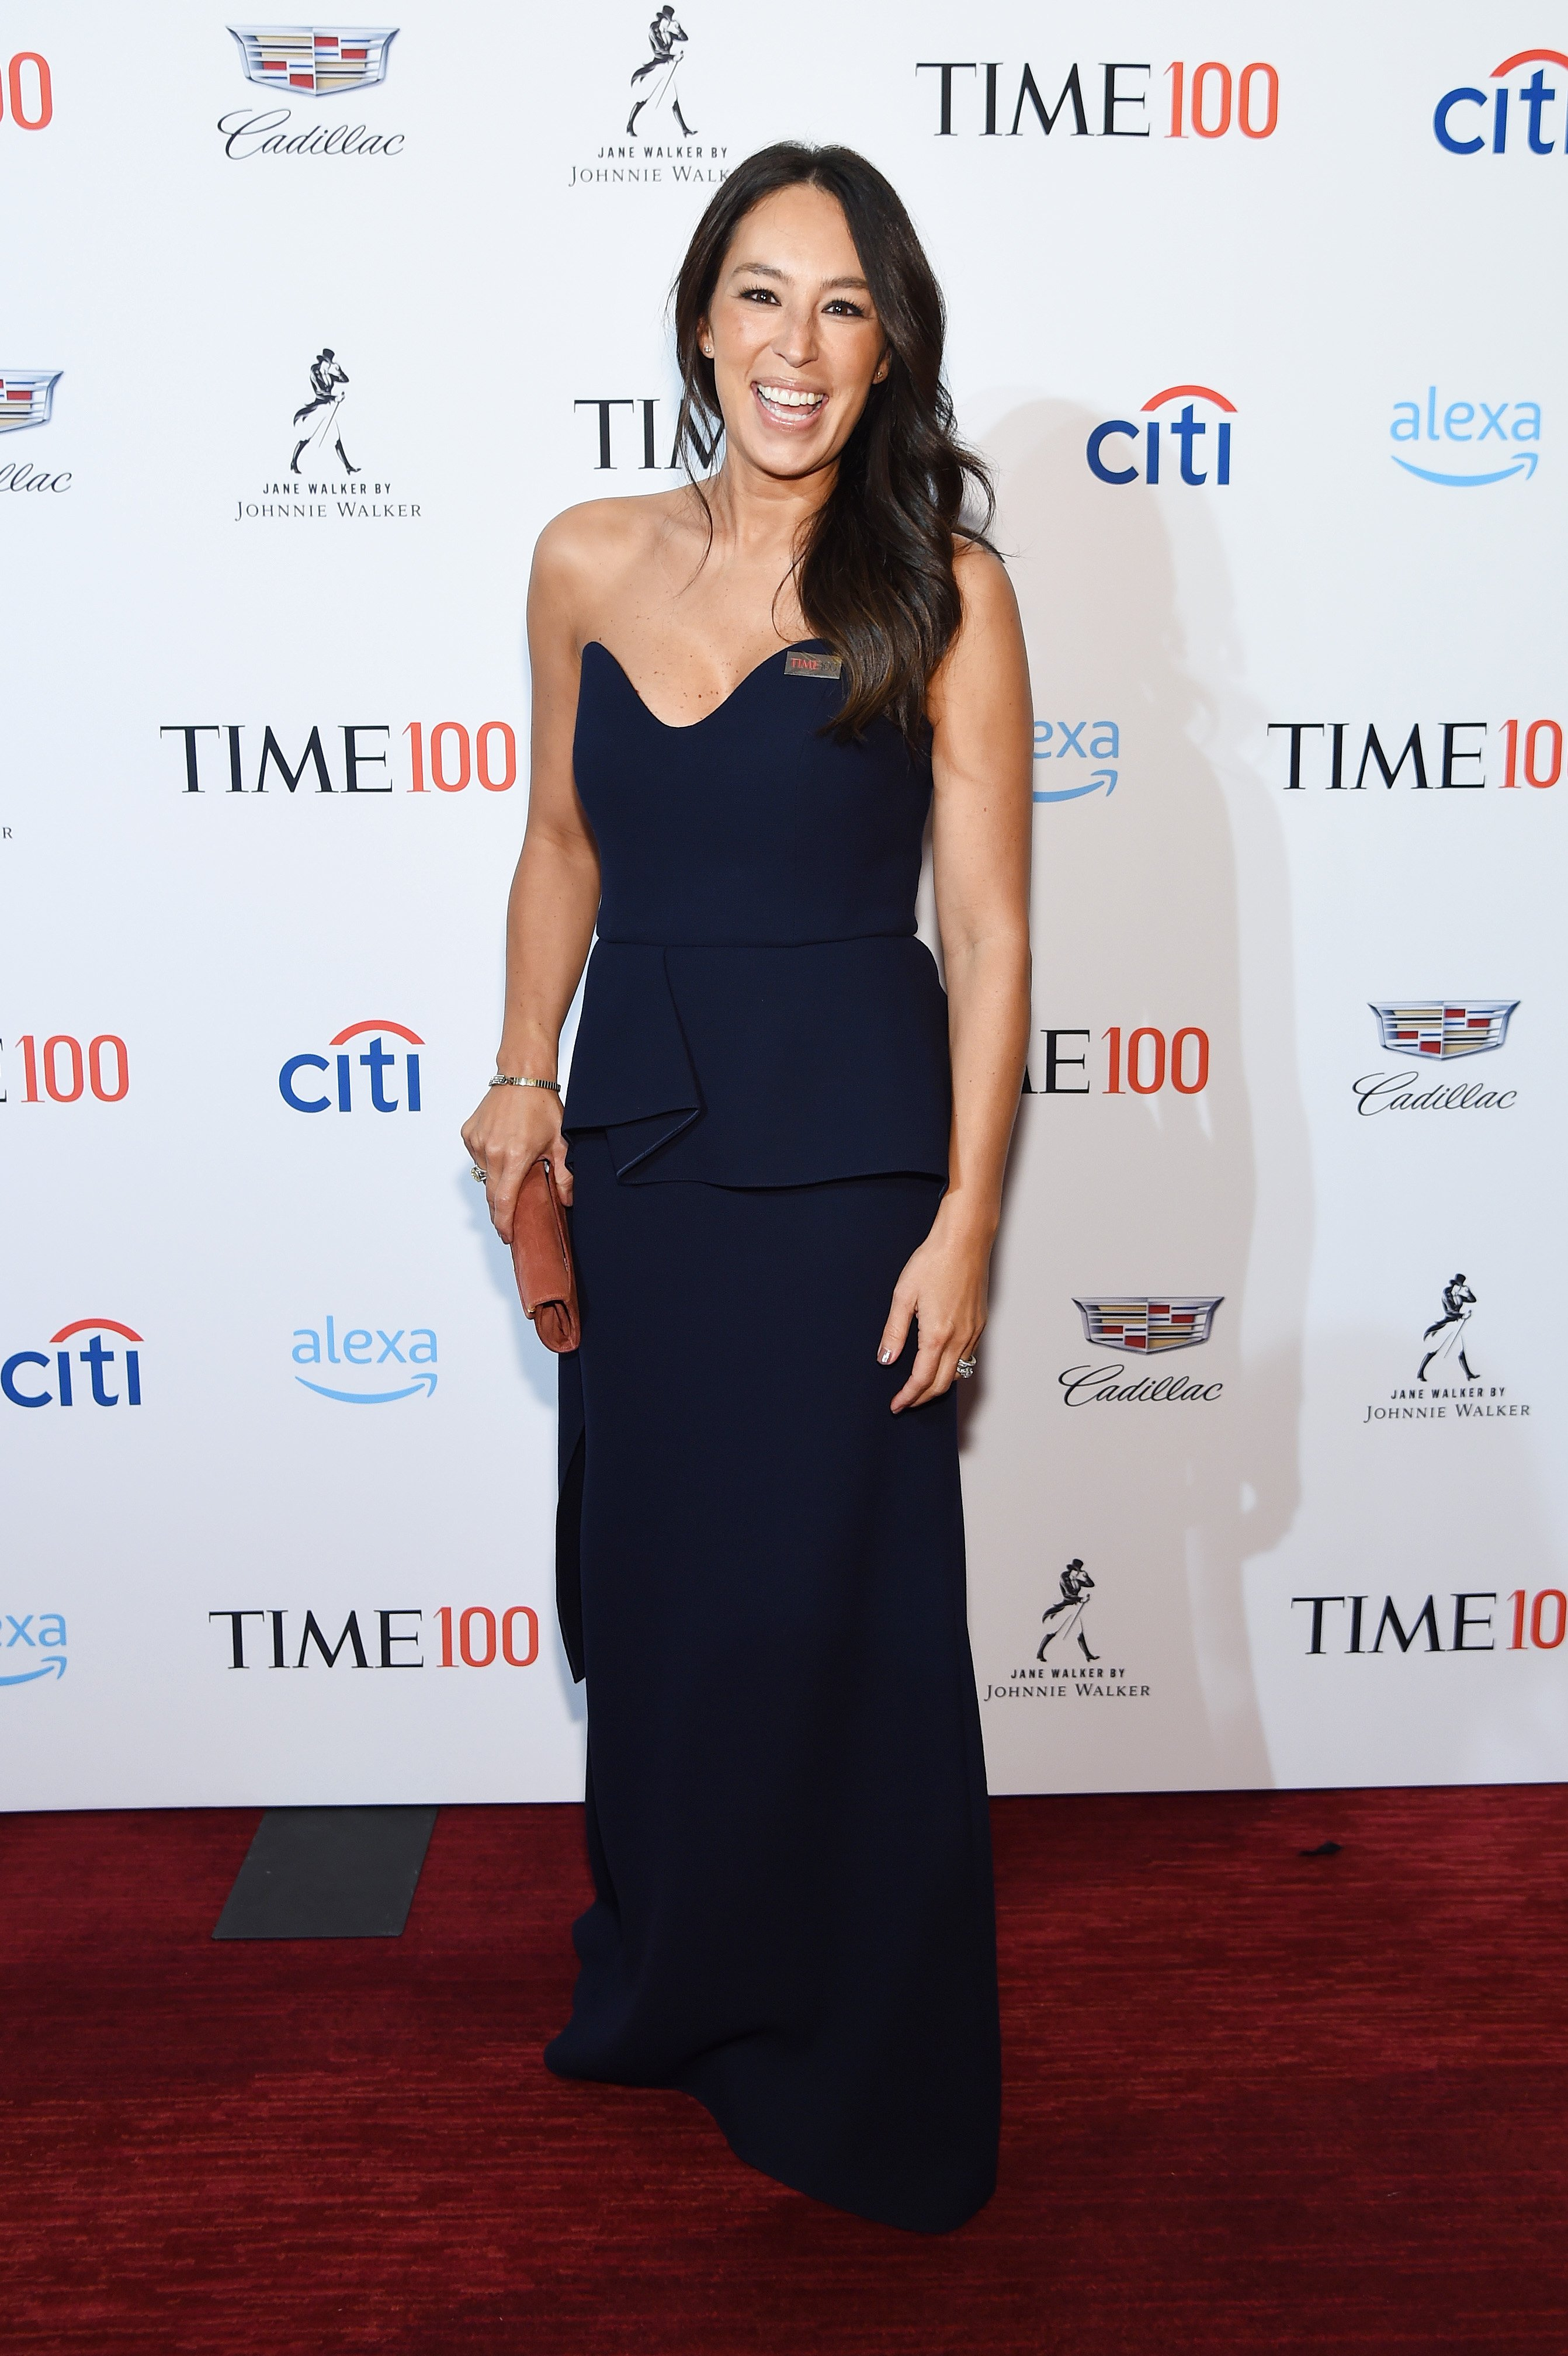 Joanna Gaines attends the TIME 100 Gala 2019 Cocktails at Jazz at Lincoln Center on April 23, 2019, in New York City. | Source: Getty Images.